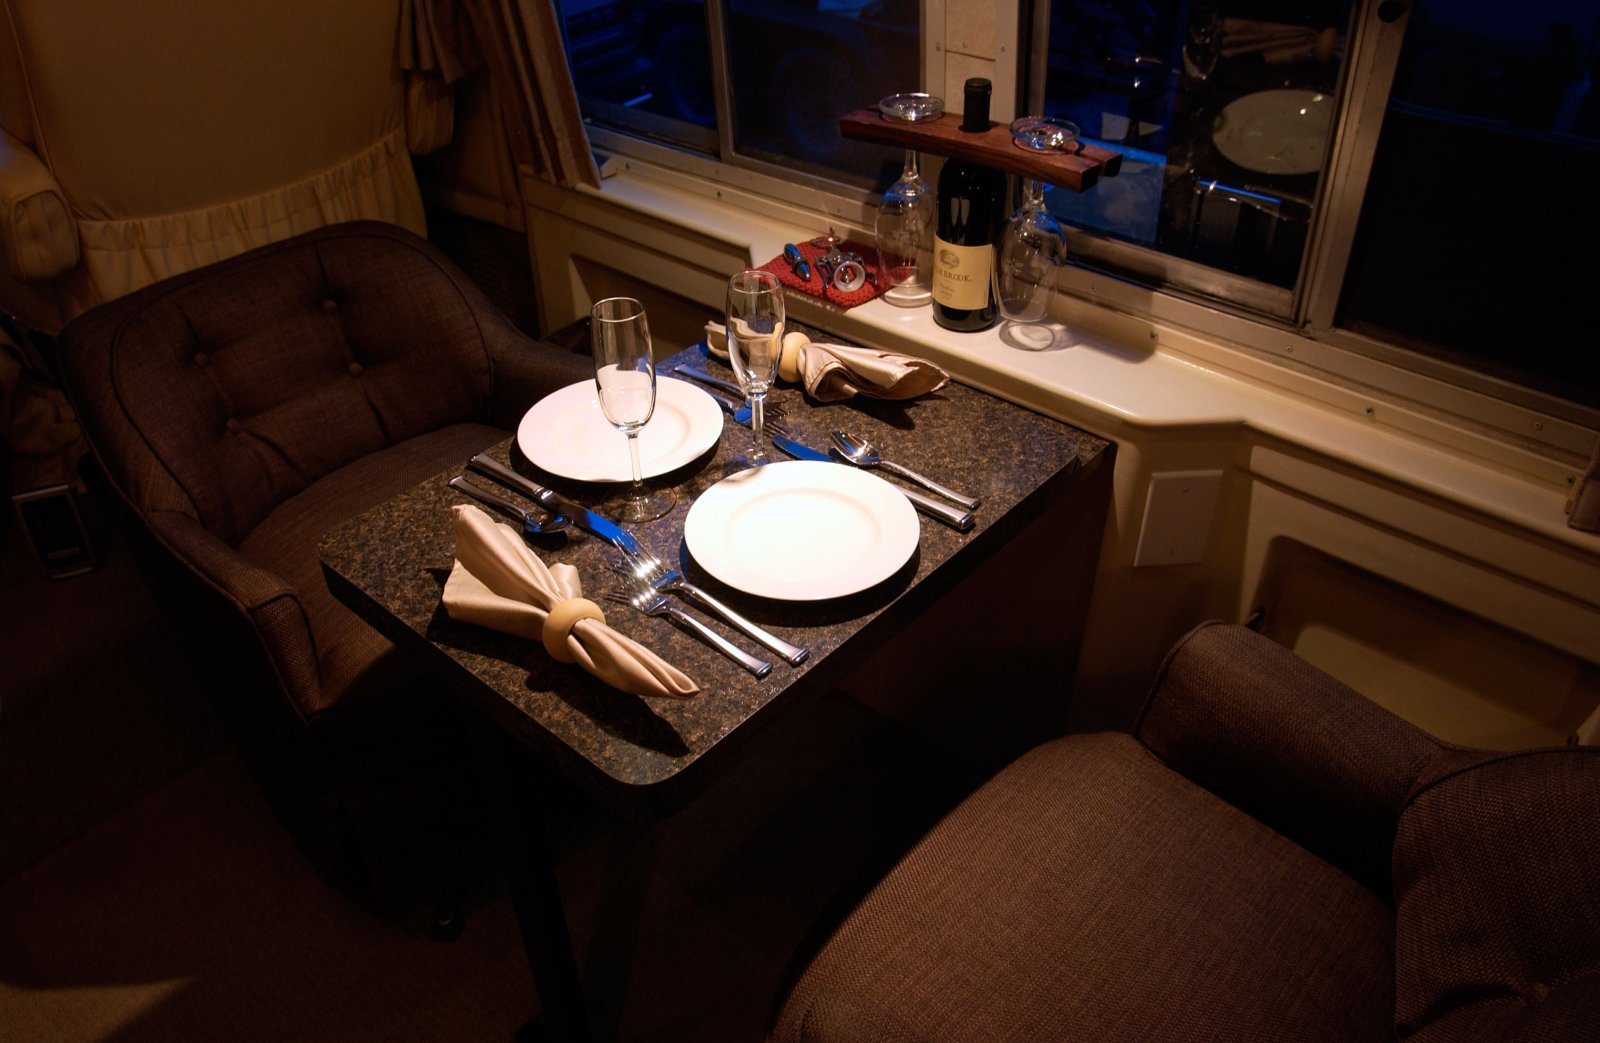 Click image for larger version  Name:DinnerTable-Night-web.jpg Views:83 Size:205.9 KB ID:225296